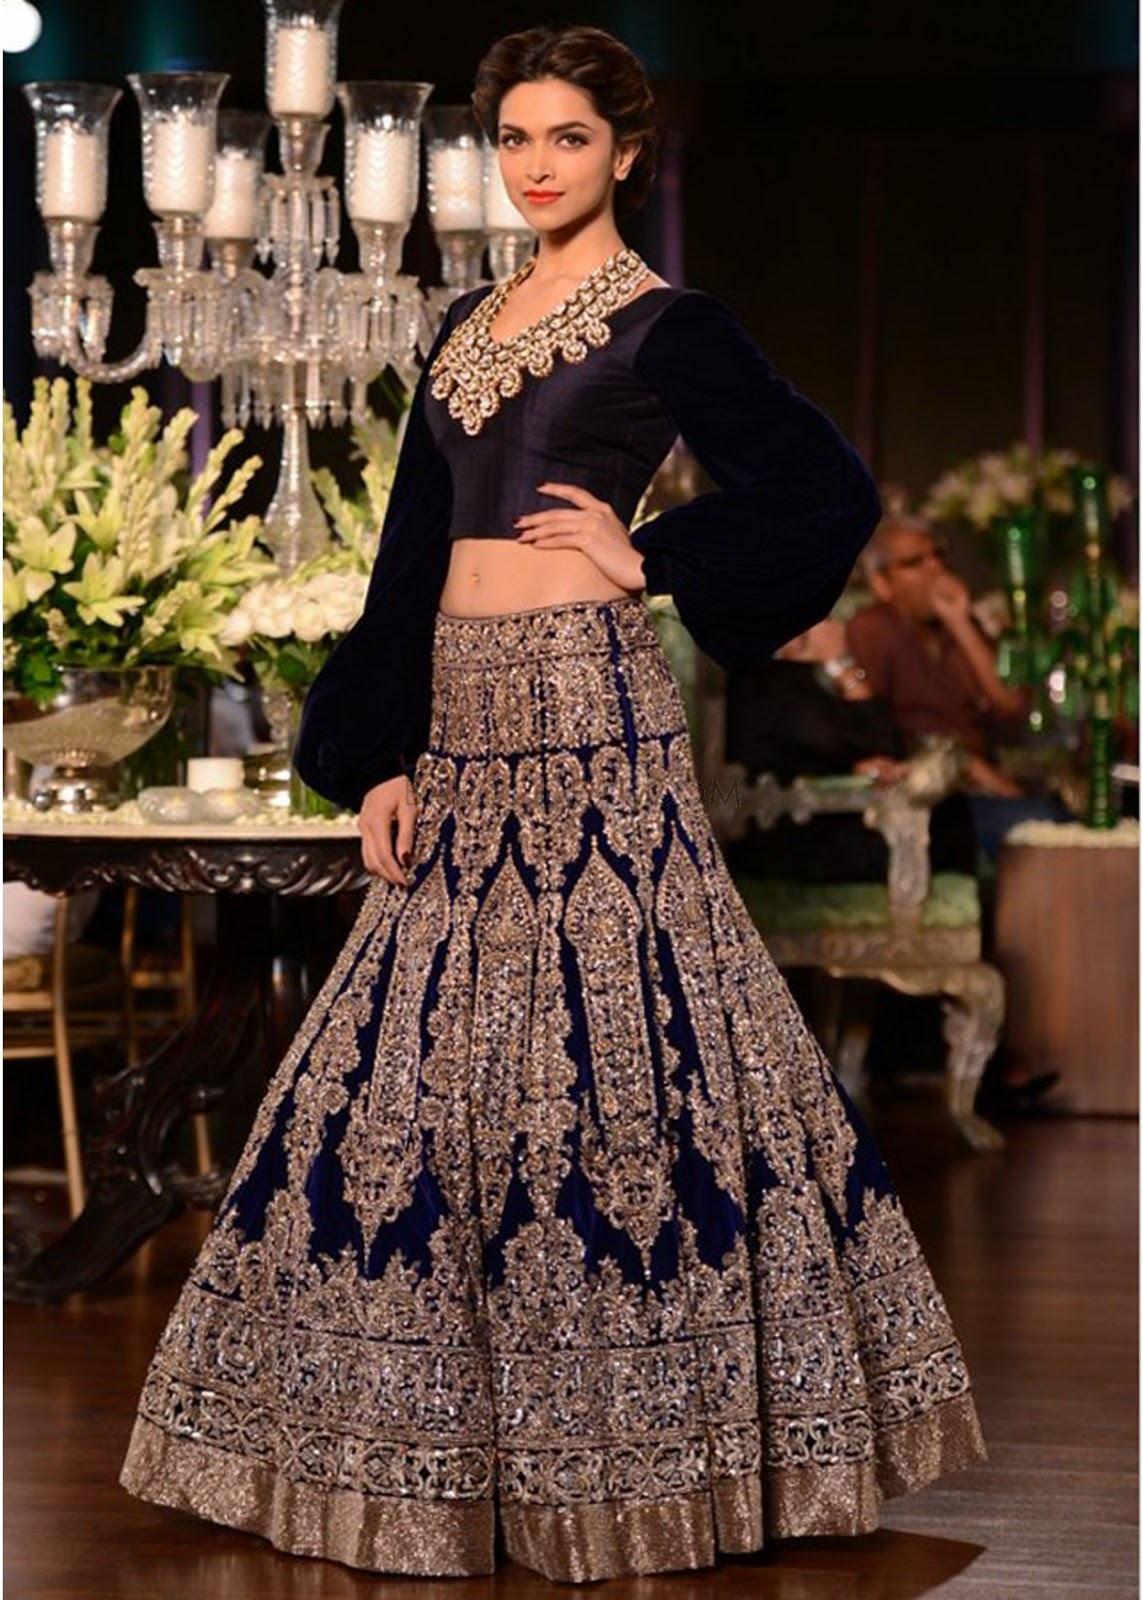 Manish malhotra anarkali manish malhotra anarkali hd wallpapers car - Manish Malhotra Anarkali Manish Malhotra Anarkali Hd Wallpapers Car 17